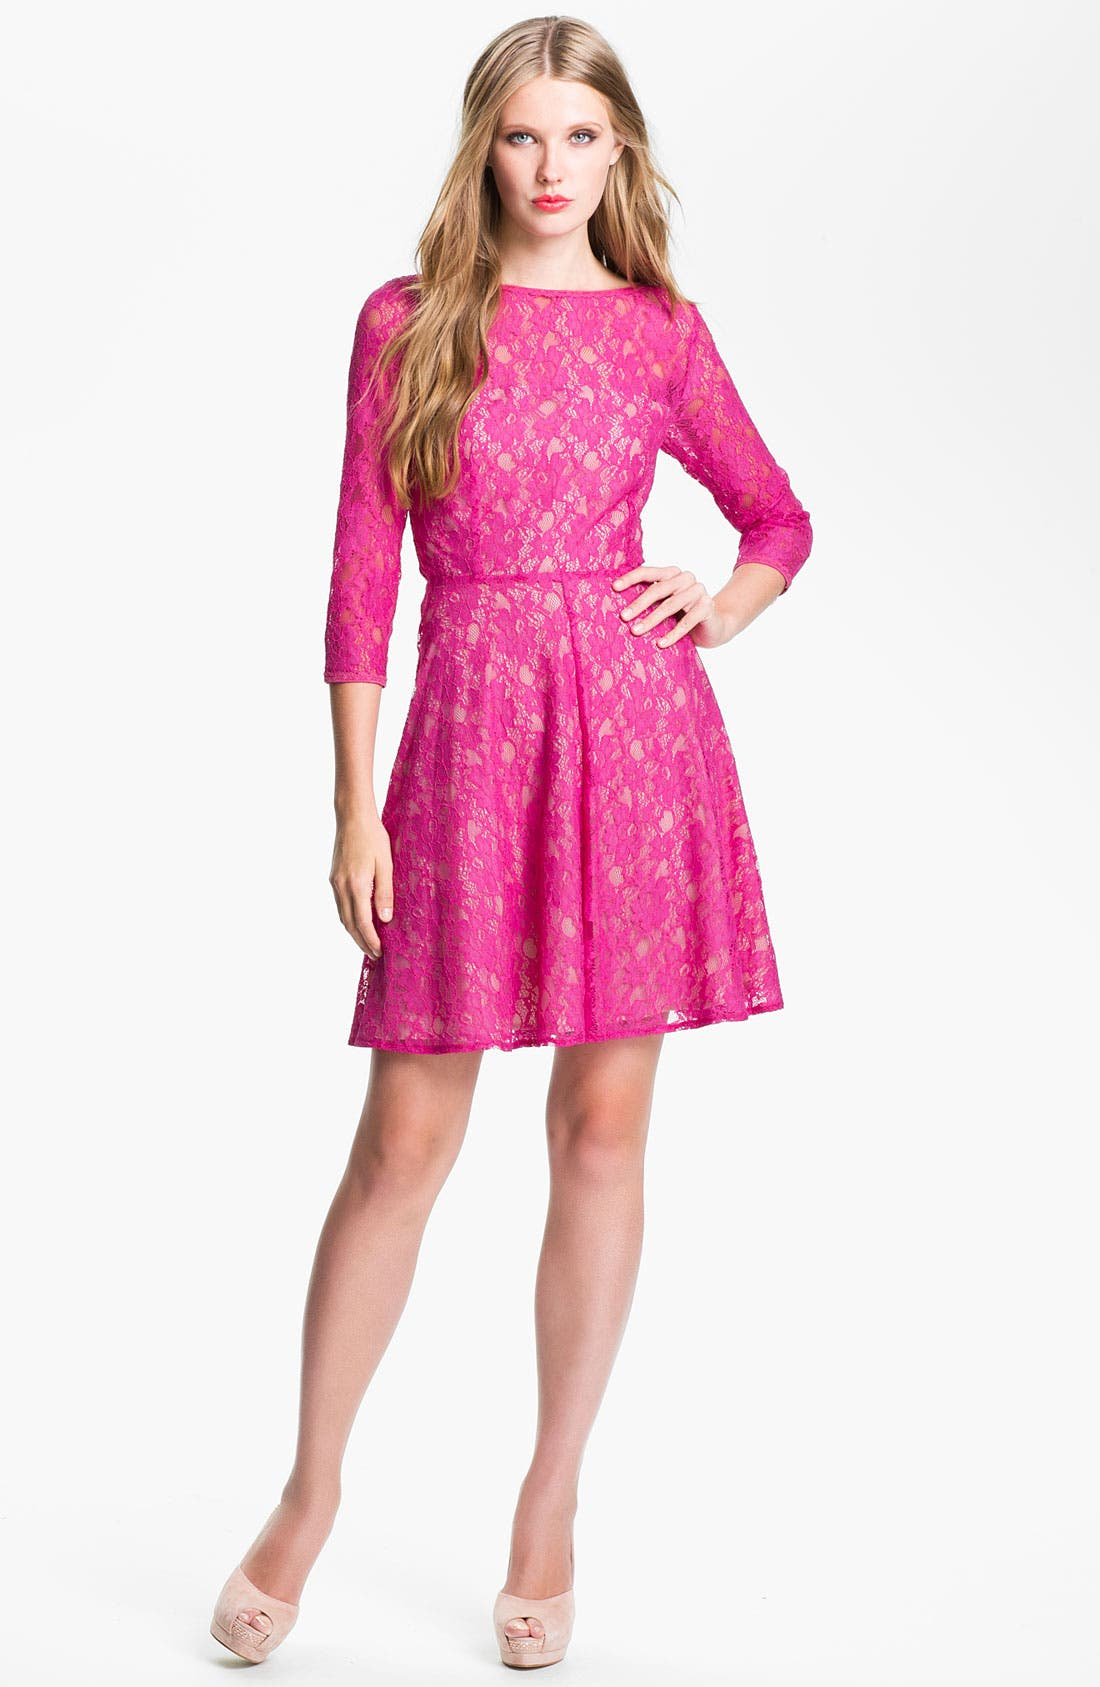 Alternate Image 1 Selected - French Connection 'Fast Iris' Lace Fit & Flare Dress